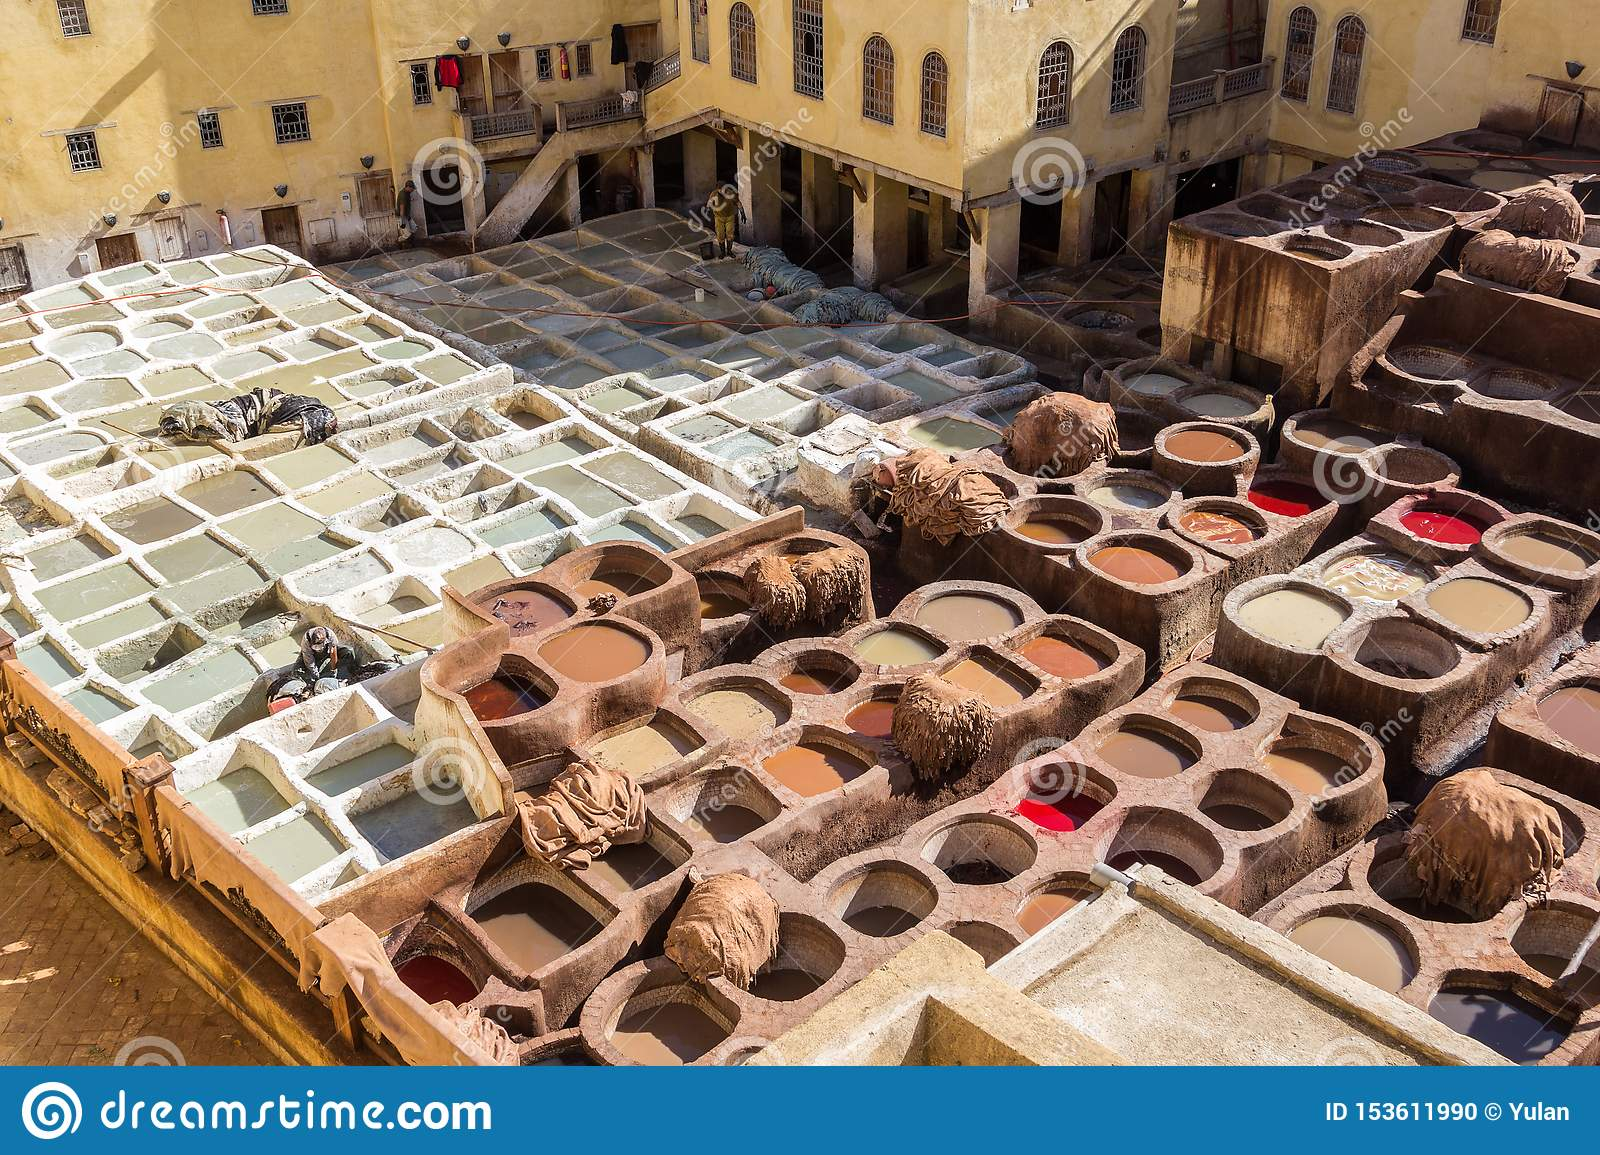 Tannery in old Medina, Fes, Morocco